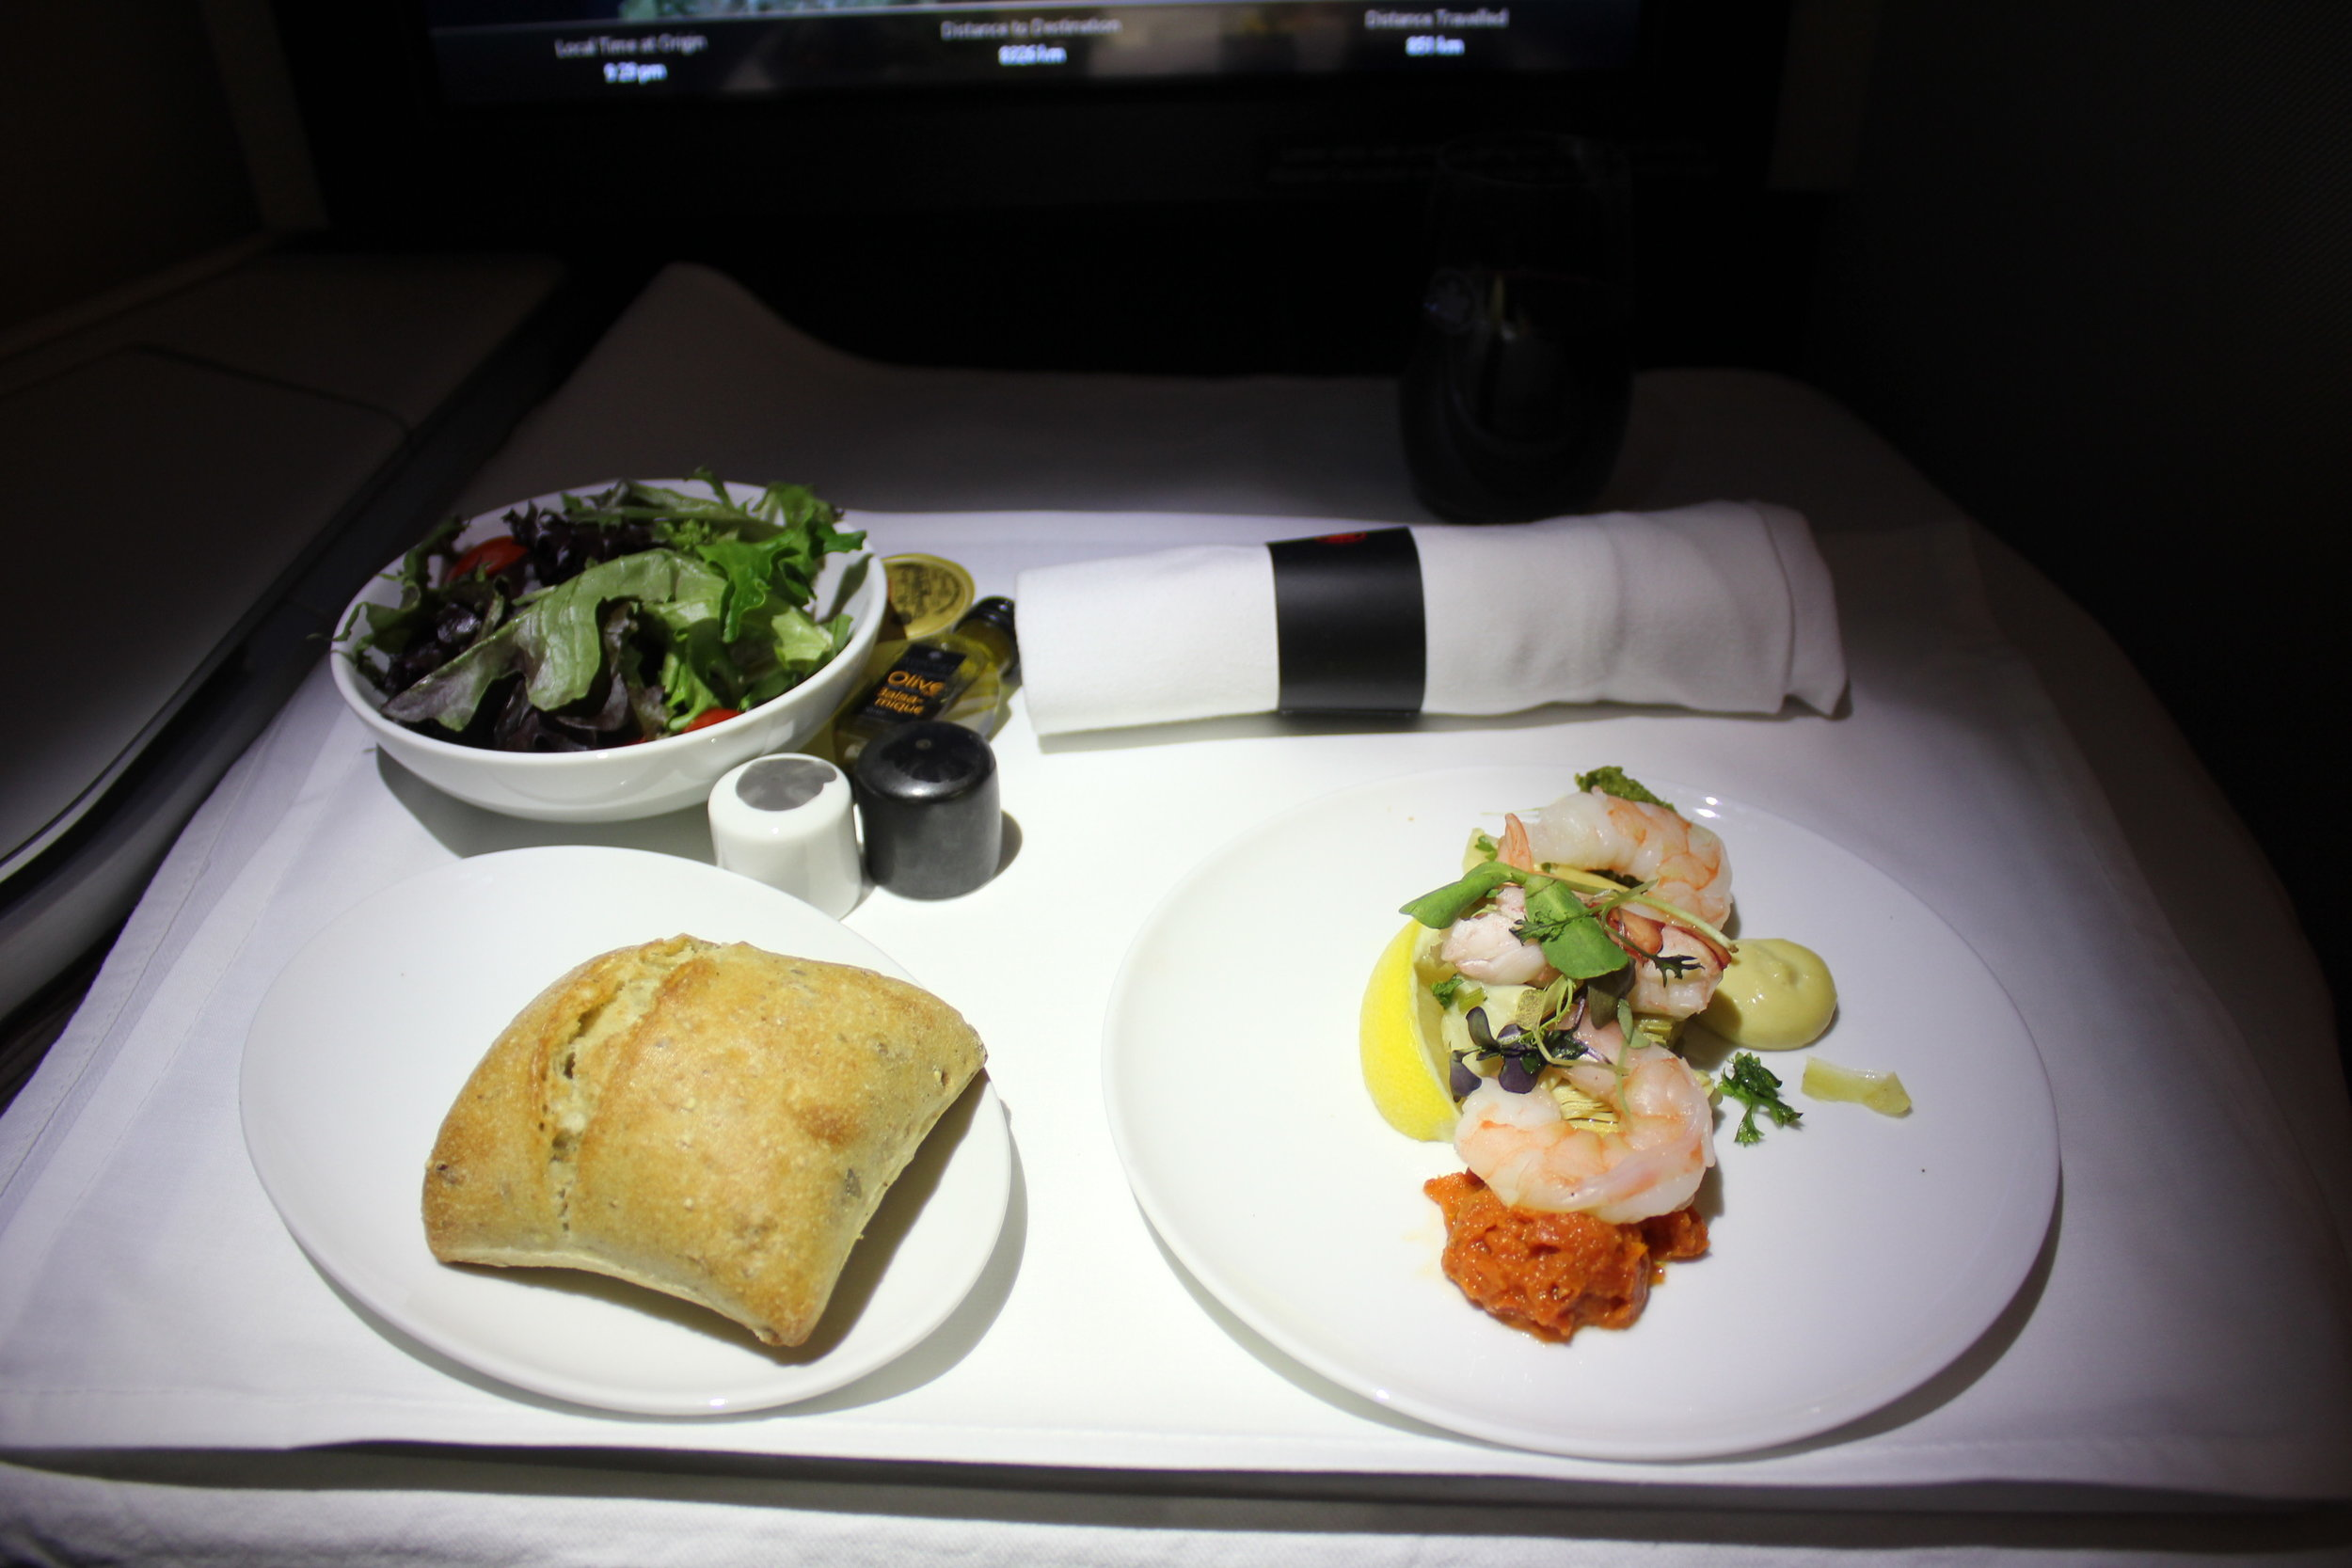 Air Canada business class – Appetizer tray